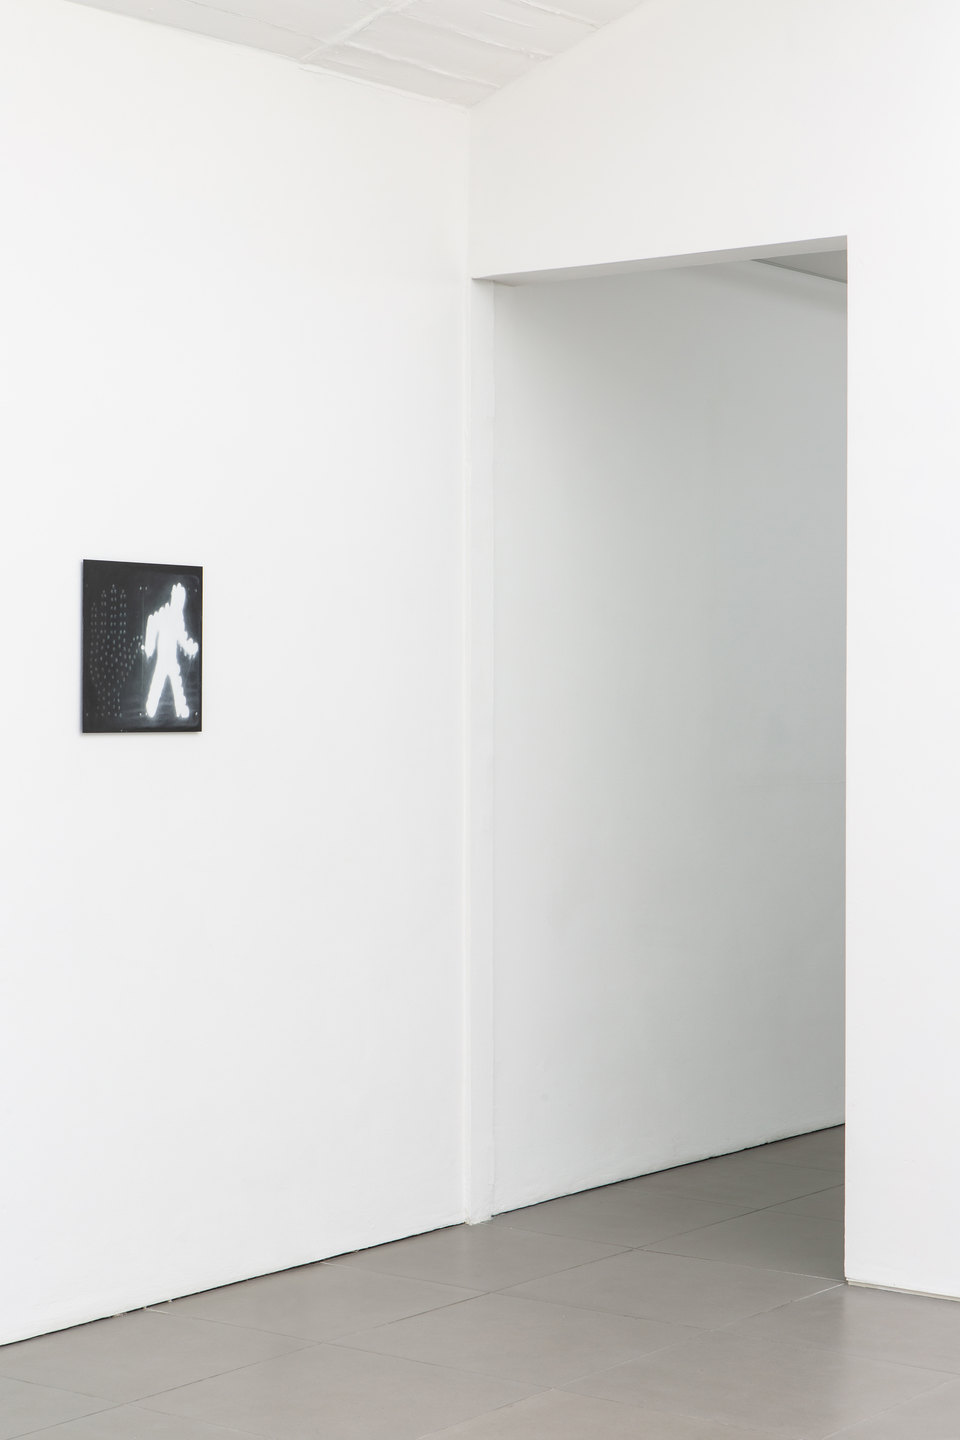 Sam Lipp, 'Walk', 2019, Oil on steel, 38 x 38cm, Civic Duty, 2019, Cell Project Space